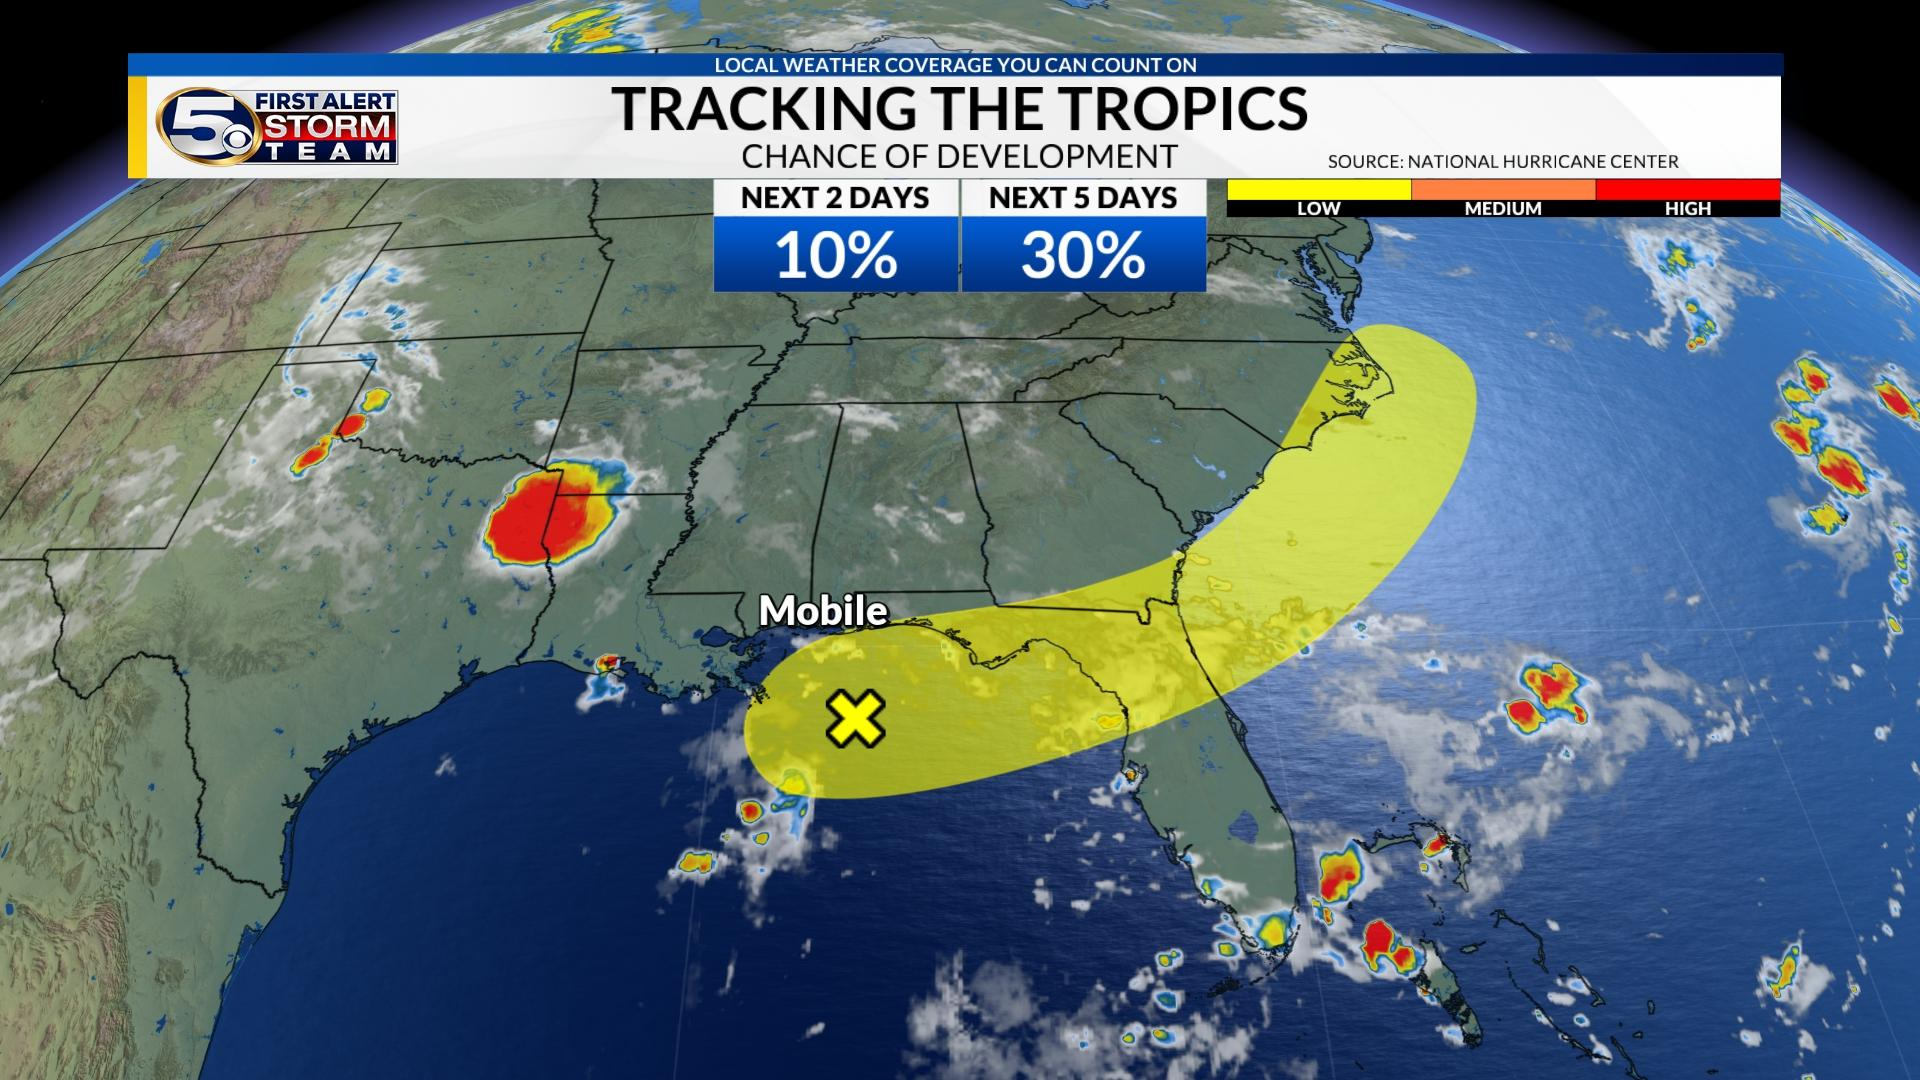 Tracking The Tropics An Area Of Low Pressure Developing In Gulf Of Mexico Wkrg News 5